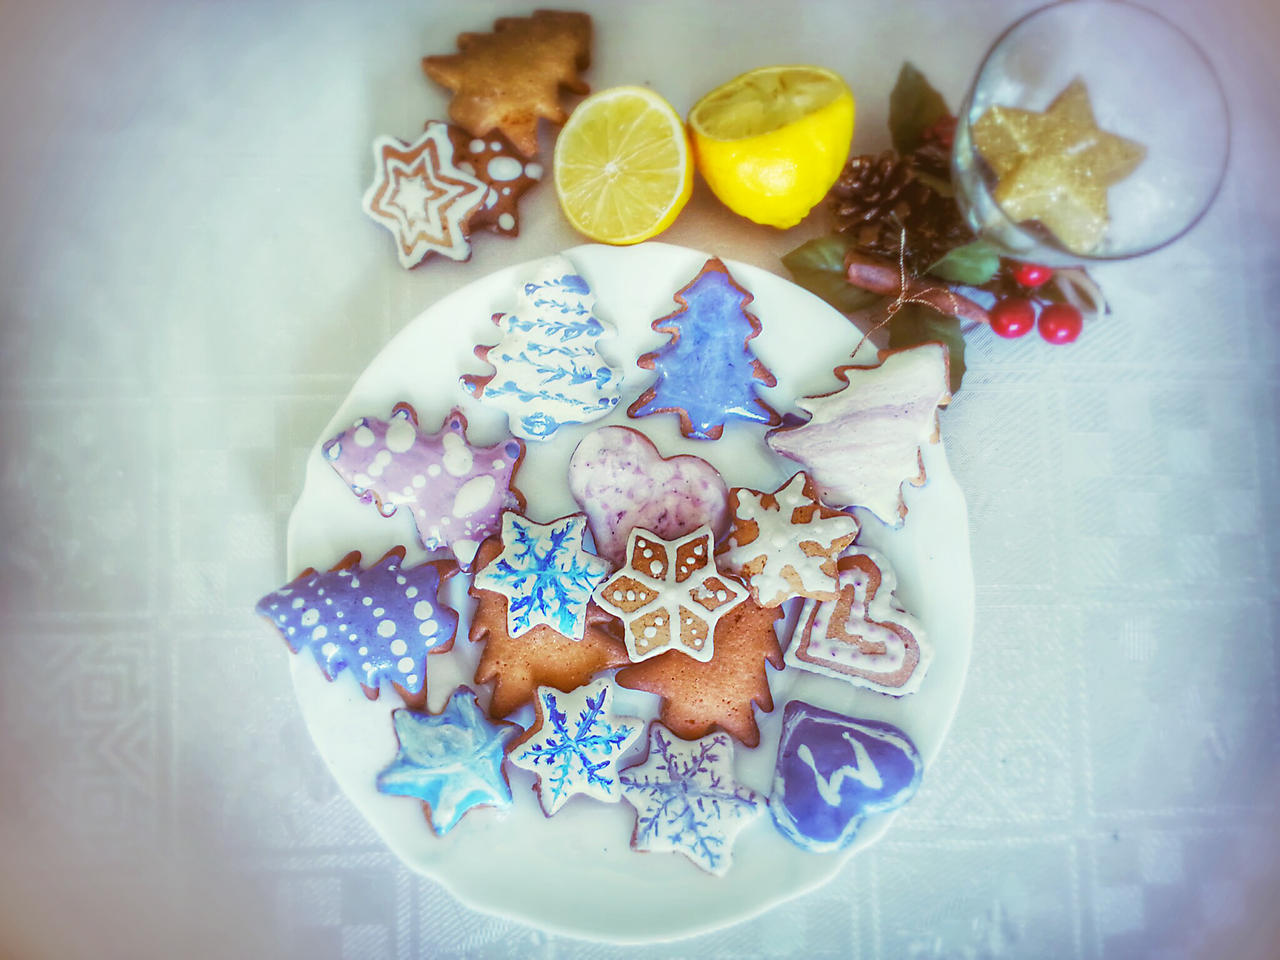 Gingerbread by dorotejabloodthirsty